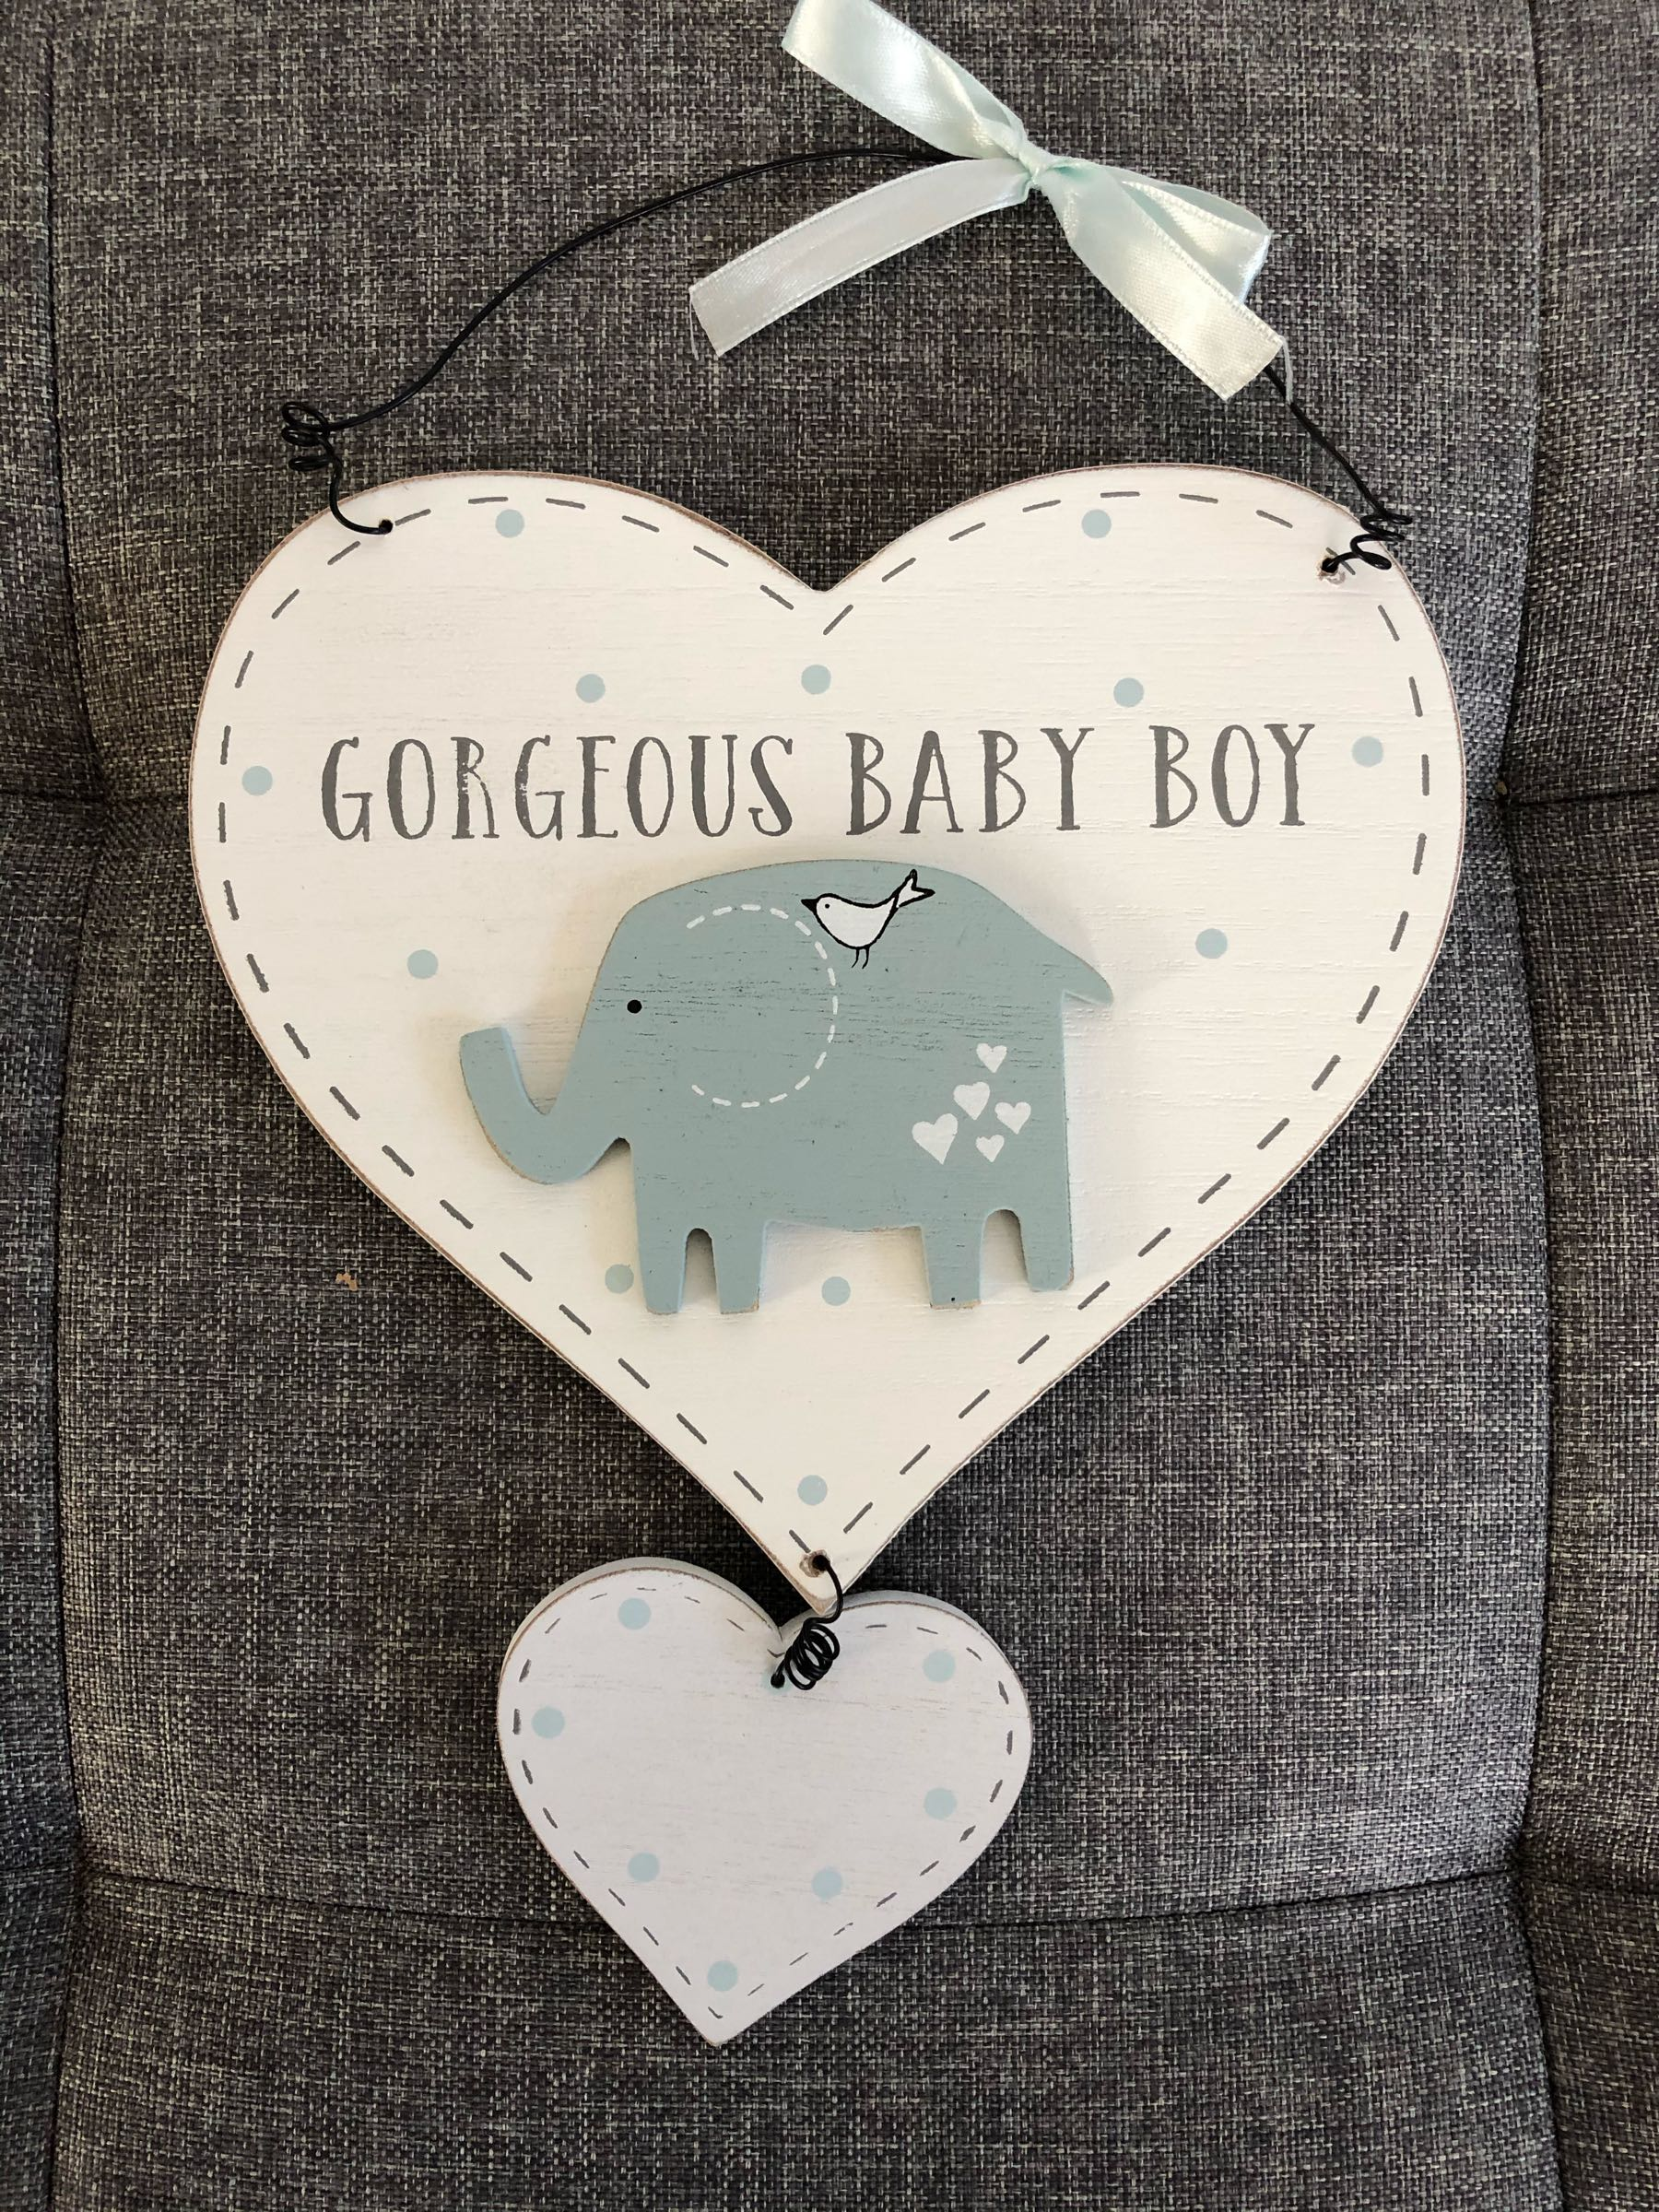 Baby plaque - name can be engraved onto heart